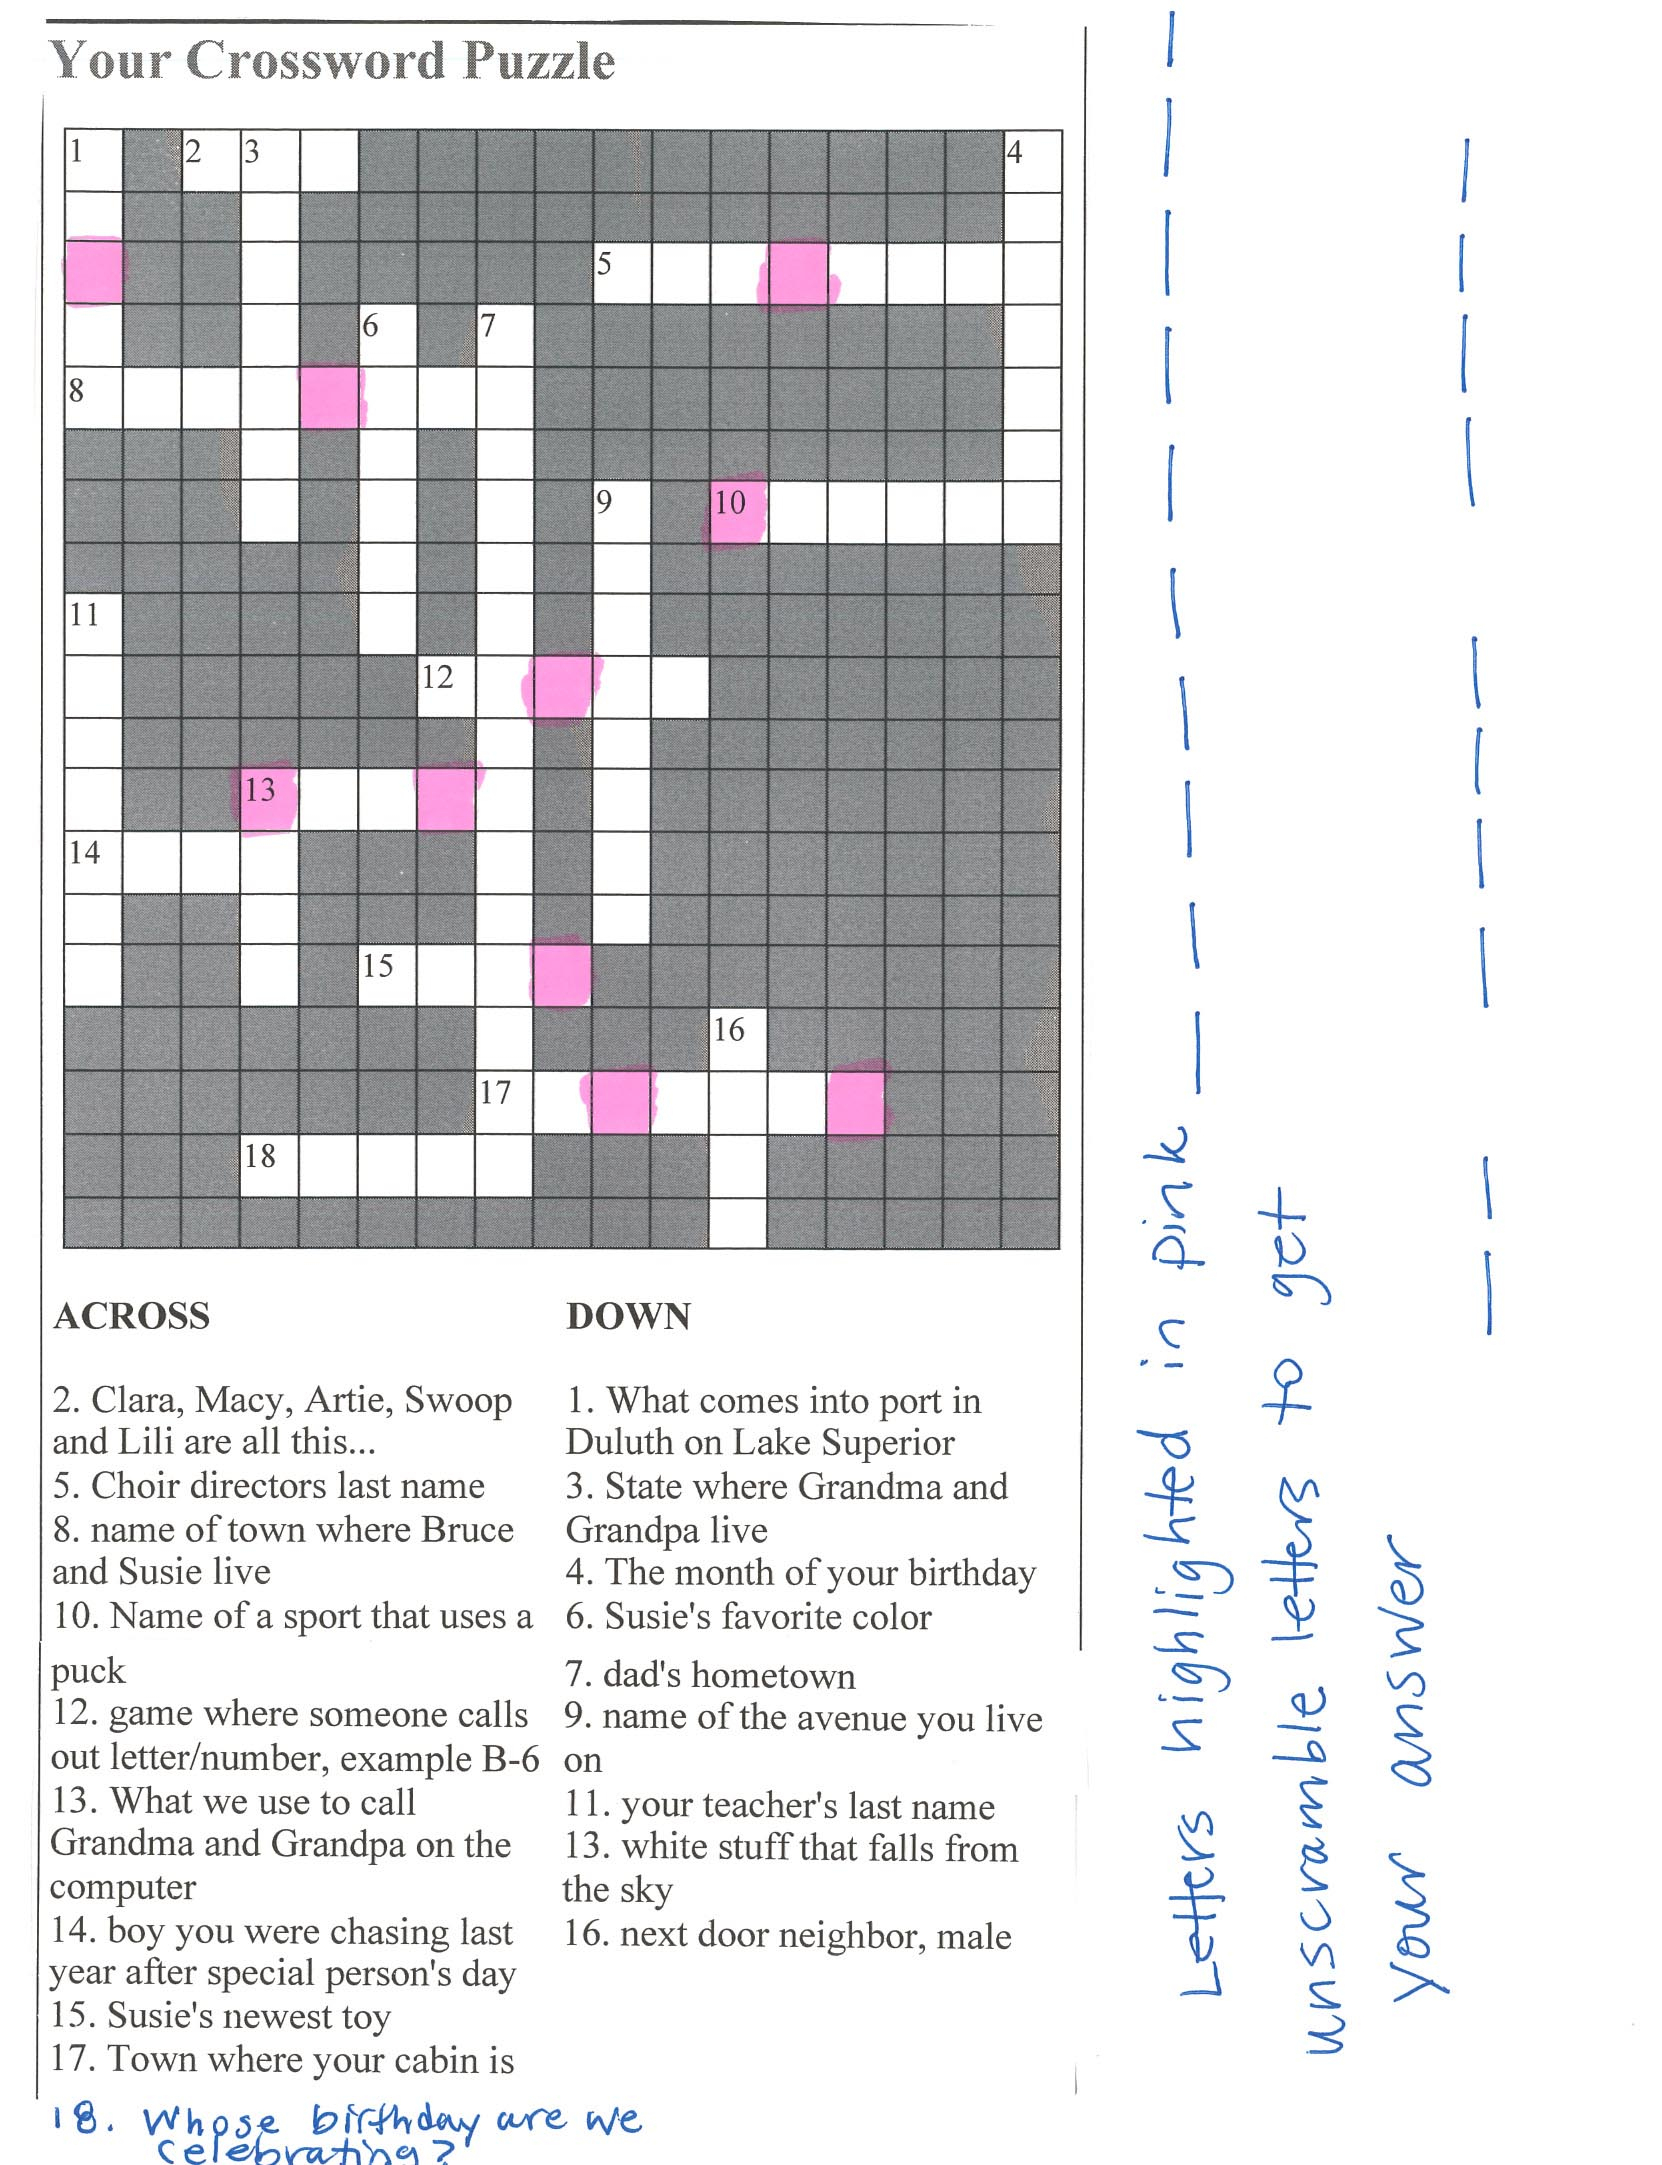 Bridal Shower Crossword Puzzle Maker - Create Your Own Crossword Puzzle Free Printable